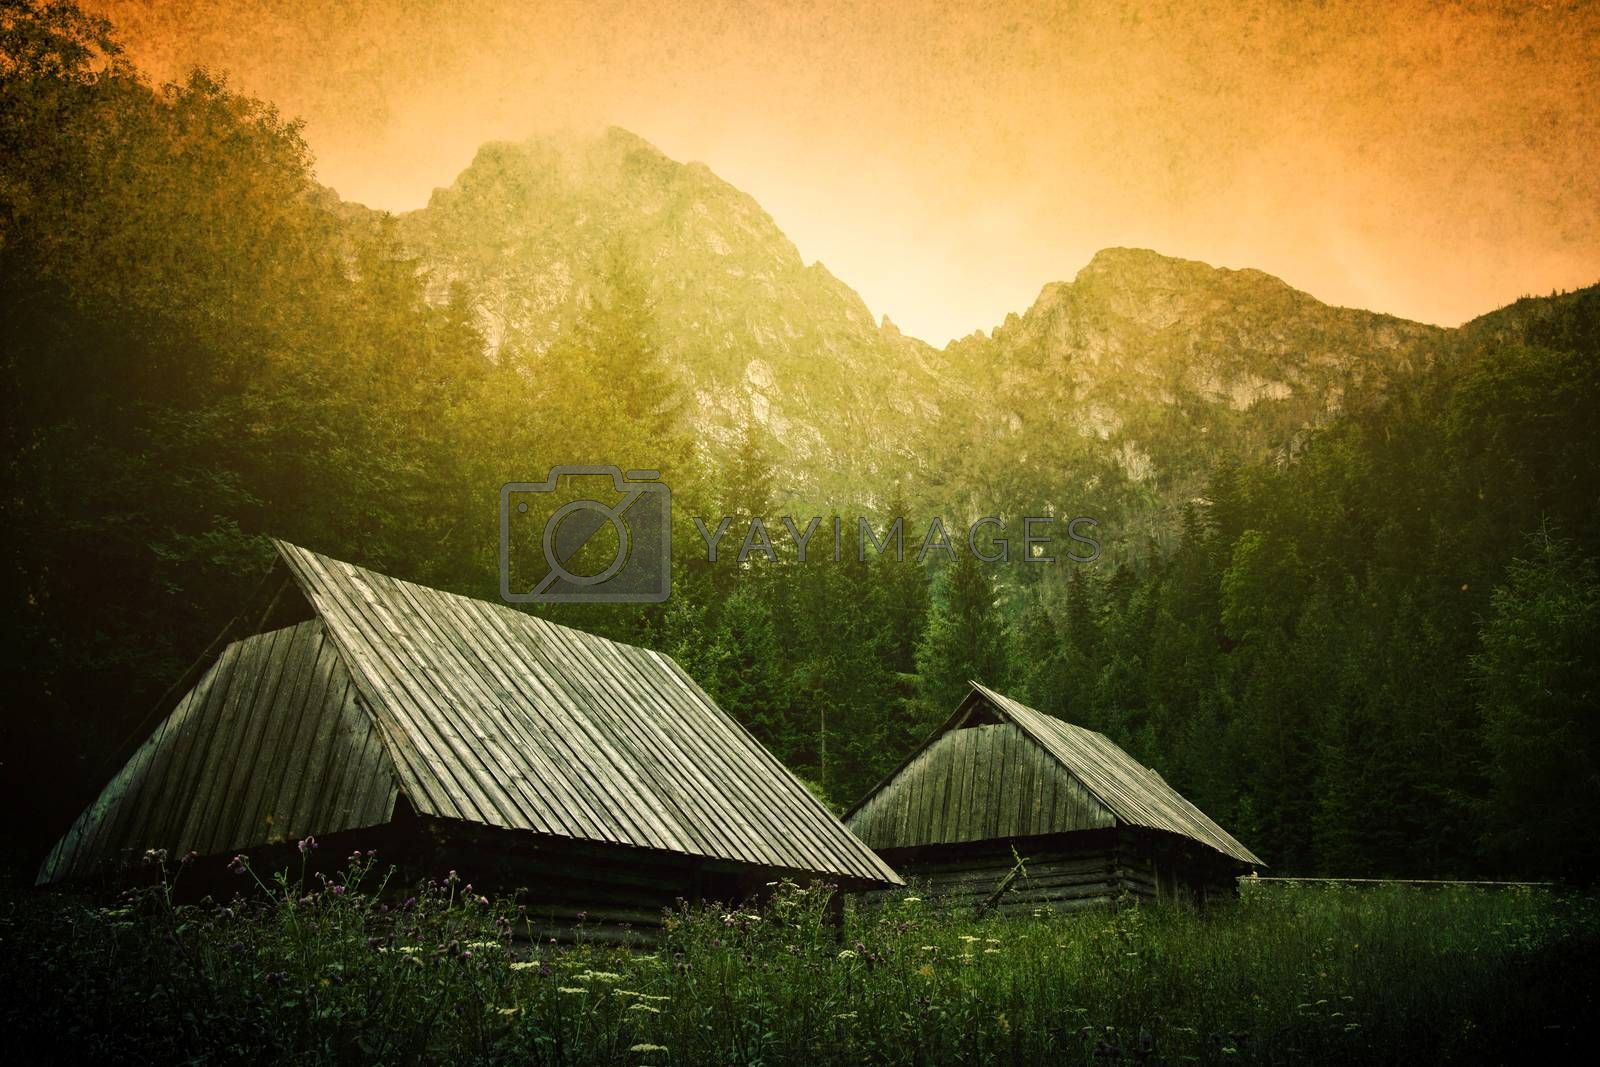 Small wooden houses under mountain. Nature in mountains. Grunge picture of Giewont.